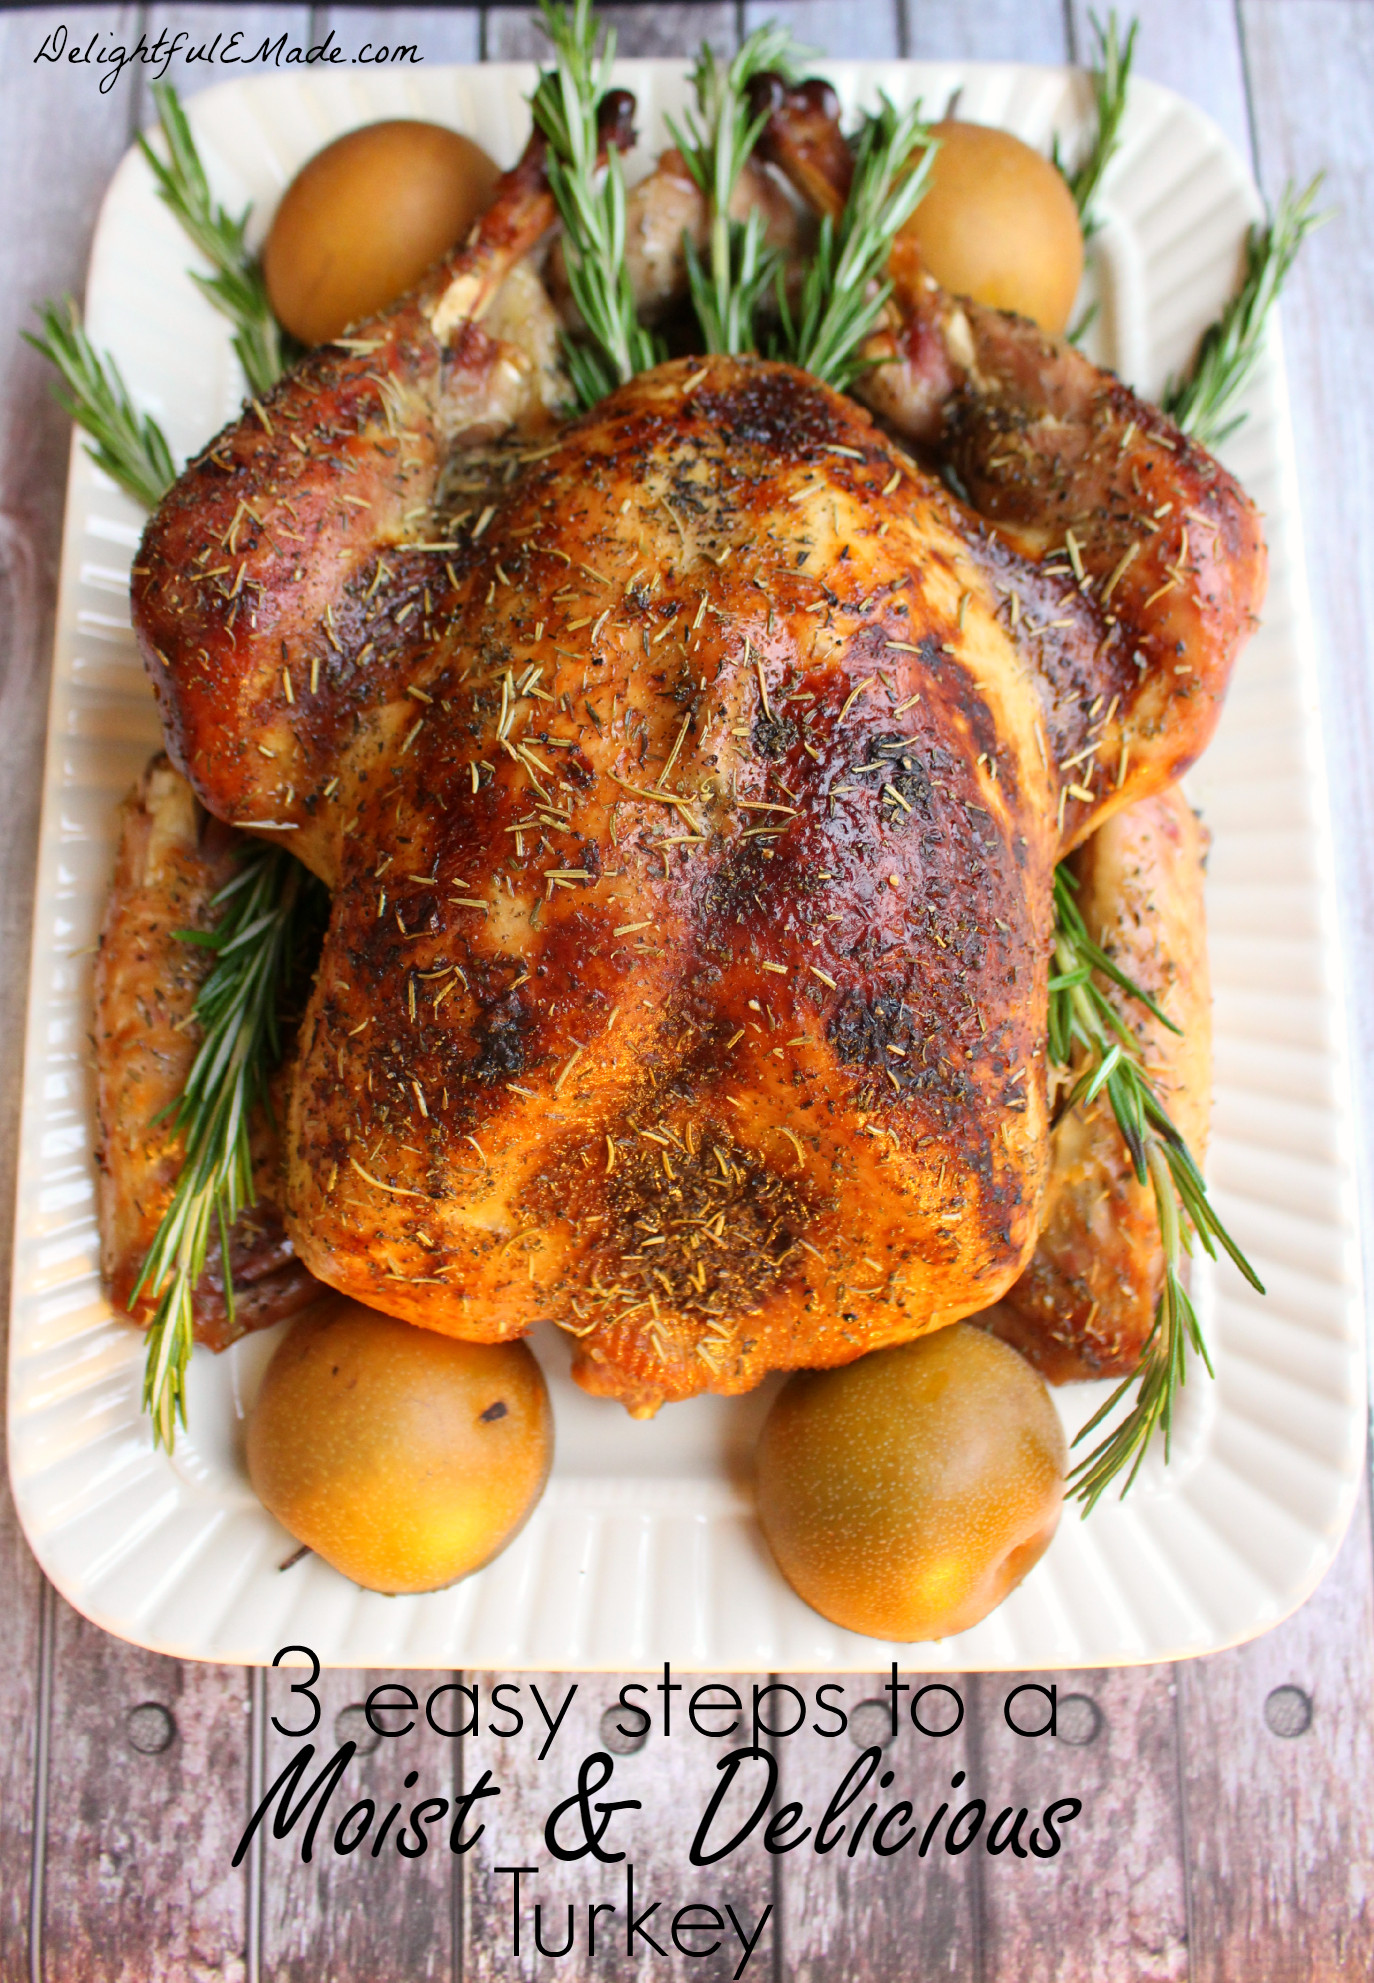 Delicious Turkey Recipes For Thanksgiving  3 Easy Steps to a Moist and Delicious Turkey Delightful